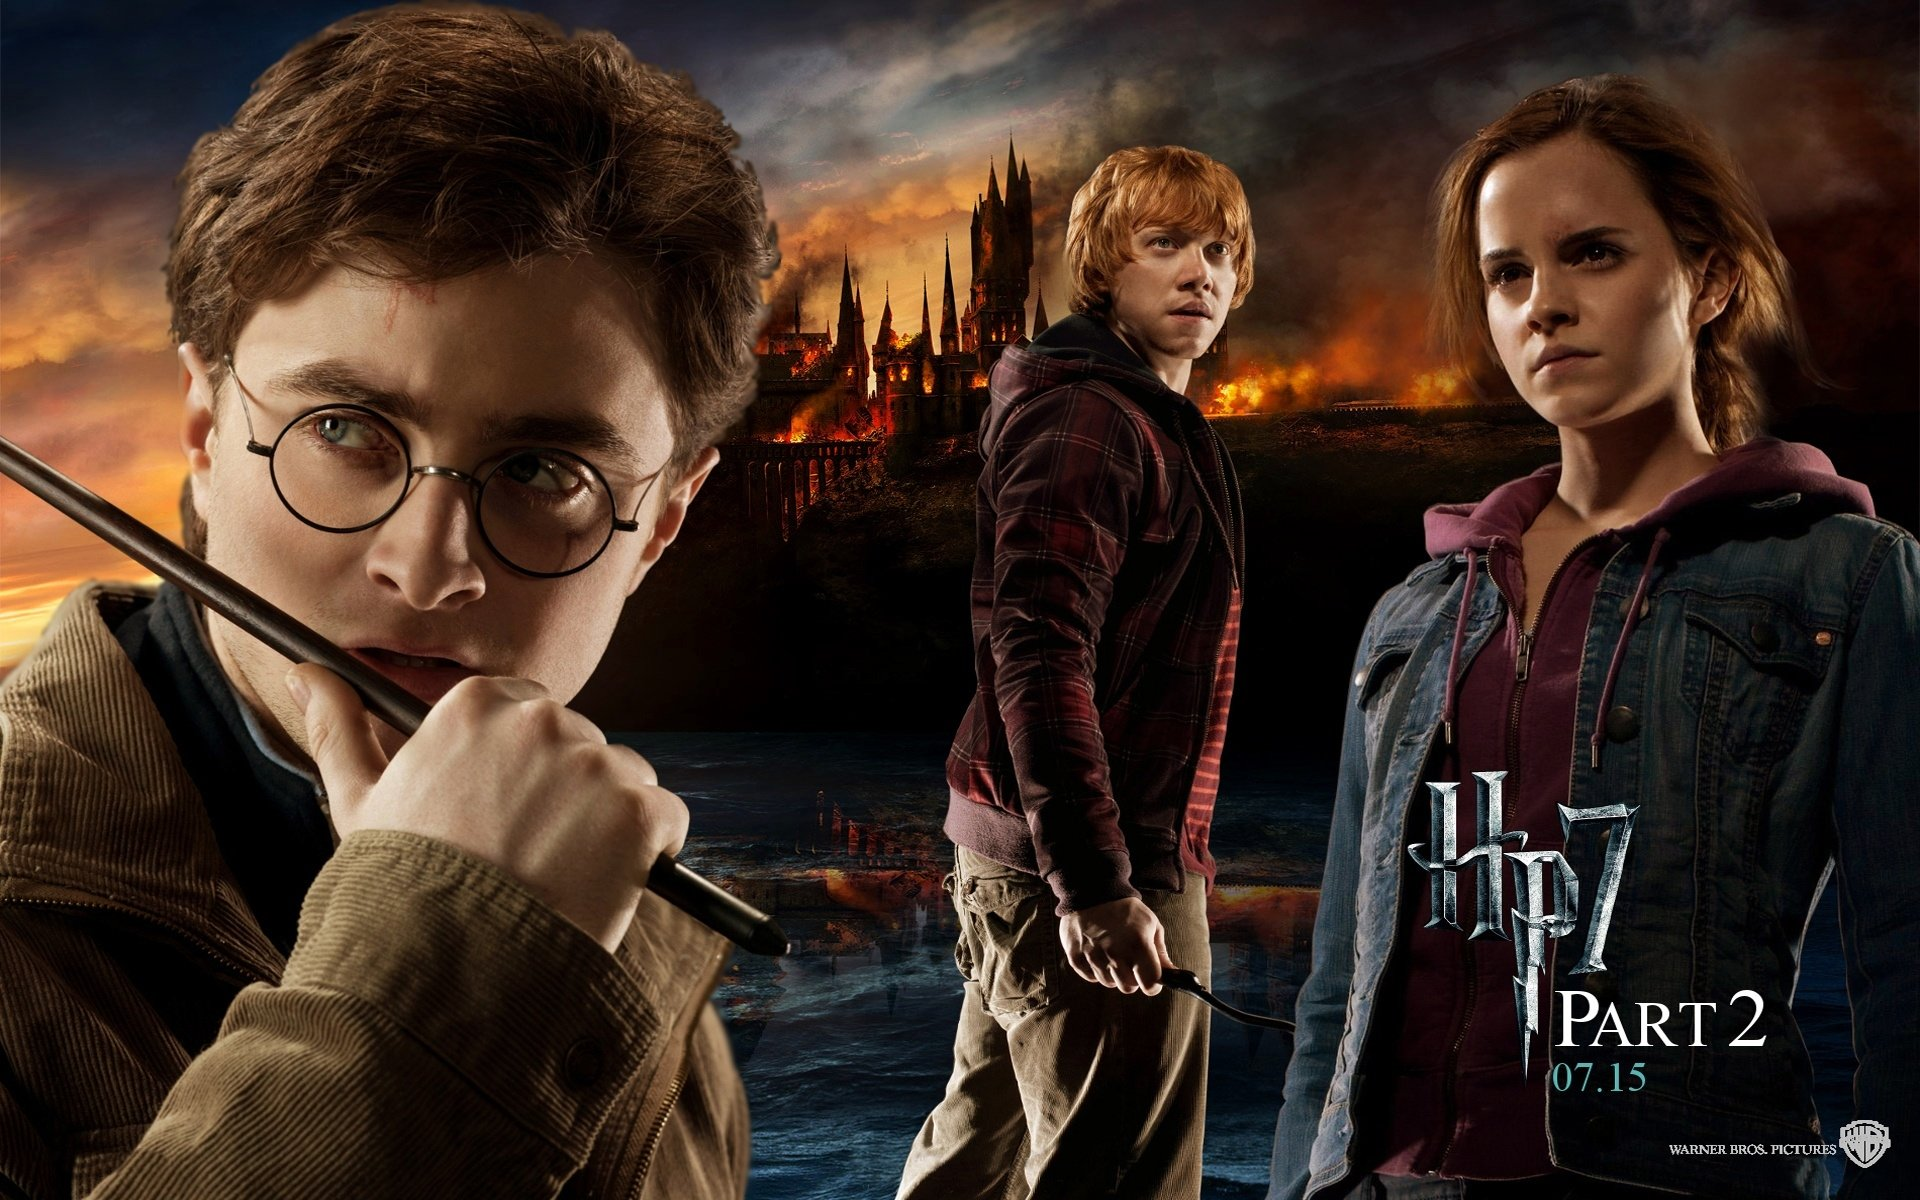 Movie - Harry Potter And The Deathly Hallows: Part 2  Harry Potter Hermione Granger Ron Weasley Hp7 Part 2 Harry Potter And The Deathly Hallows Wallpaper